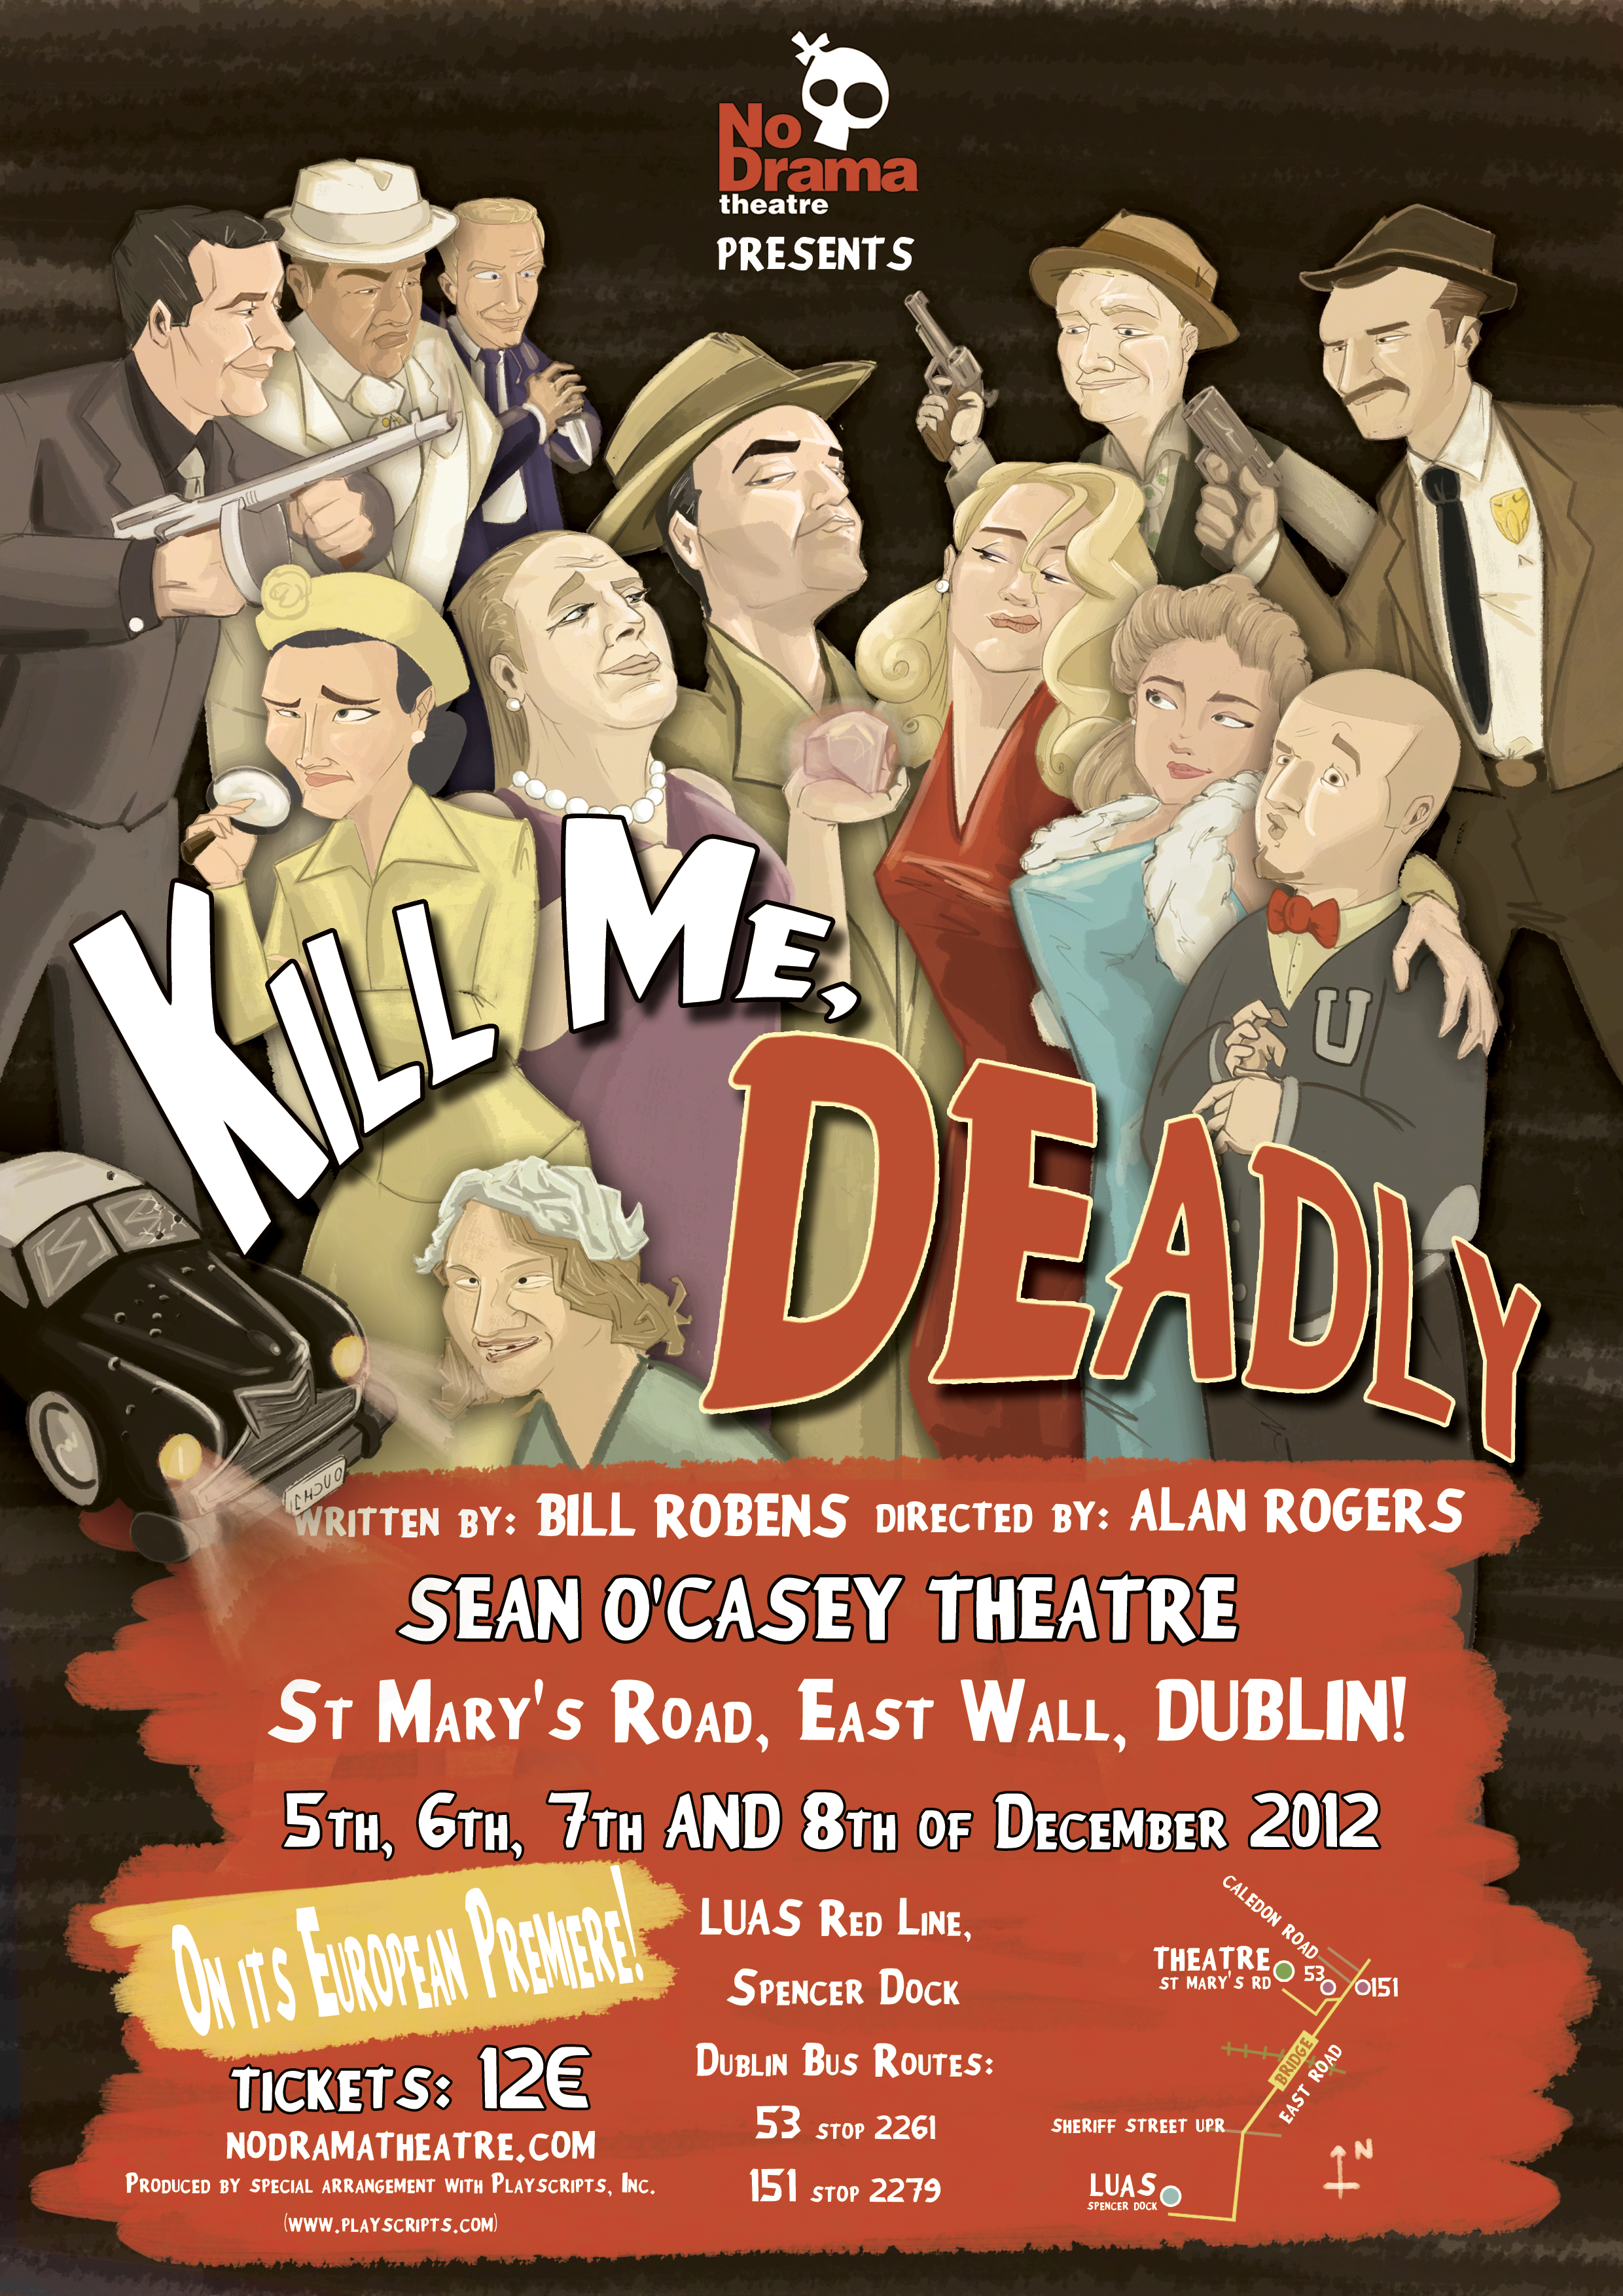 Kill Me Deadly for No Drama Theatre